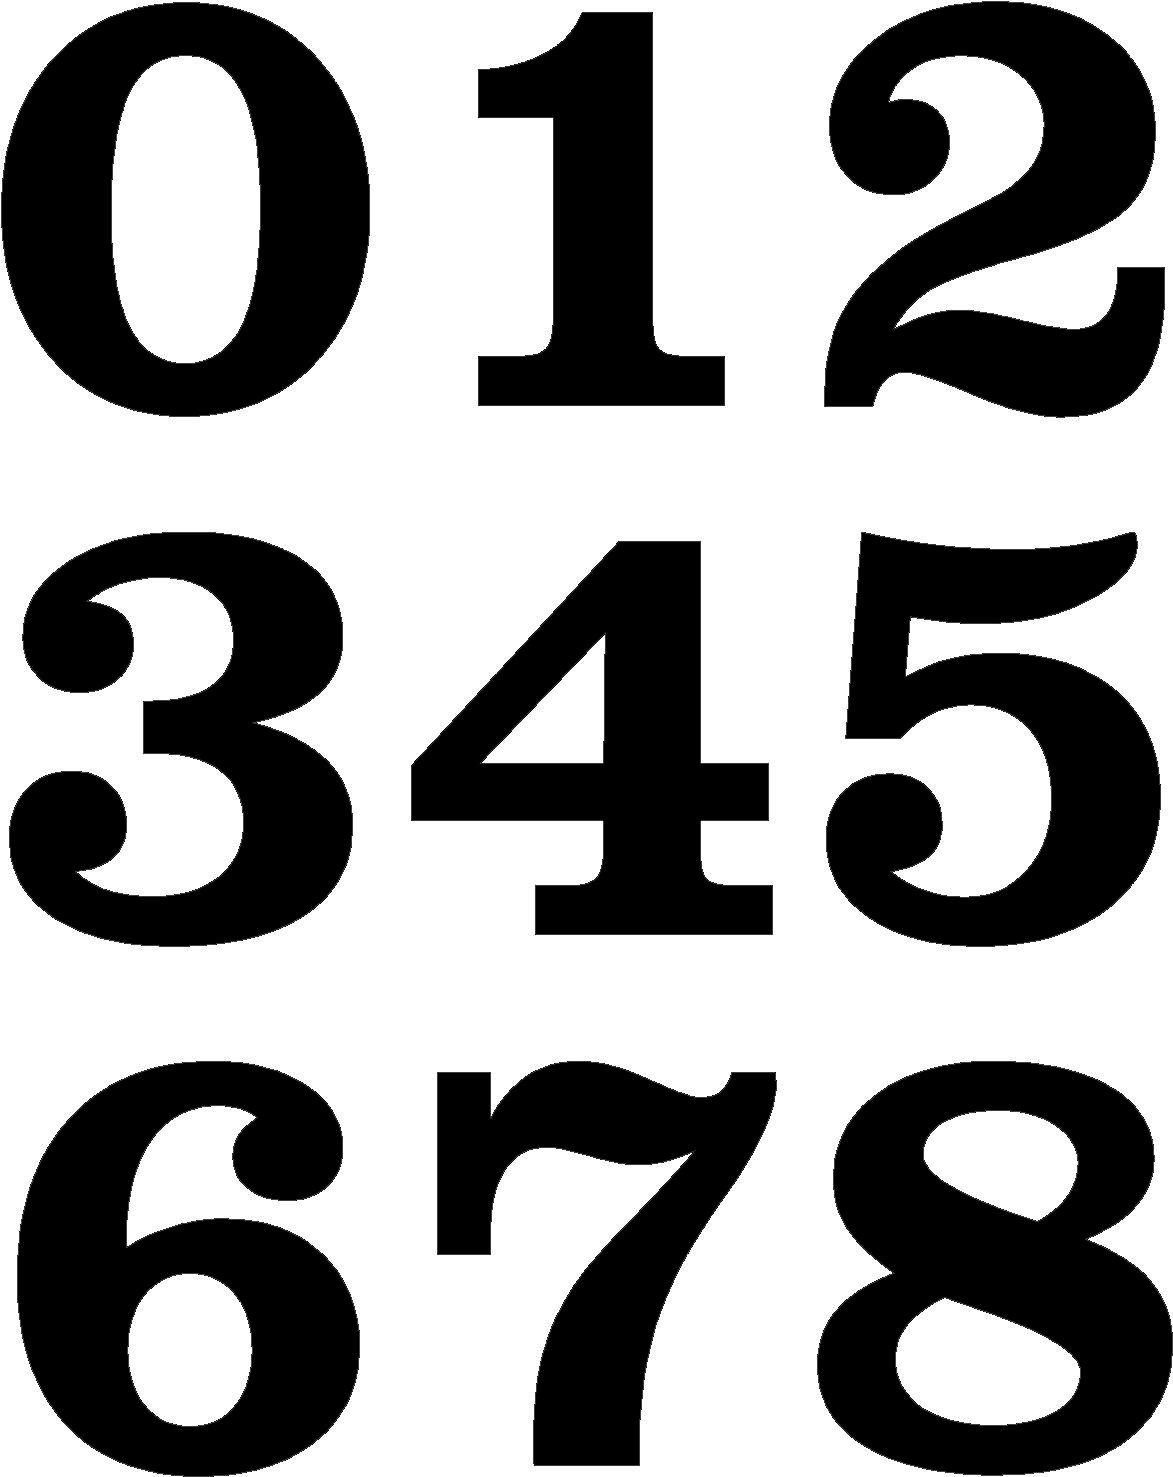 Vintage racing number fonts images for Blueprint number